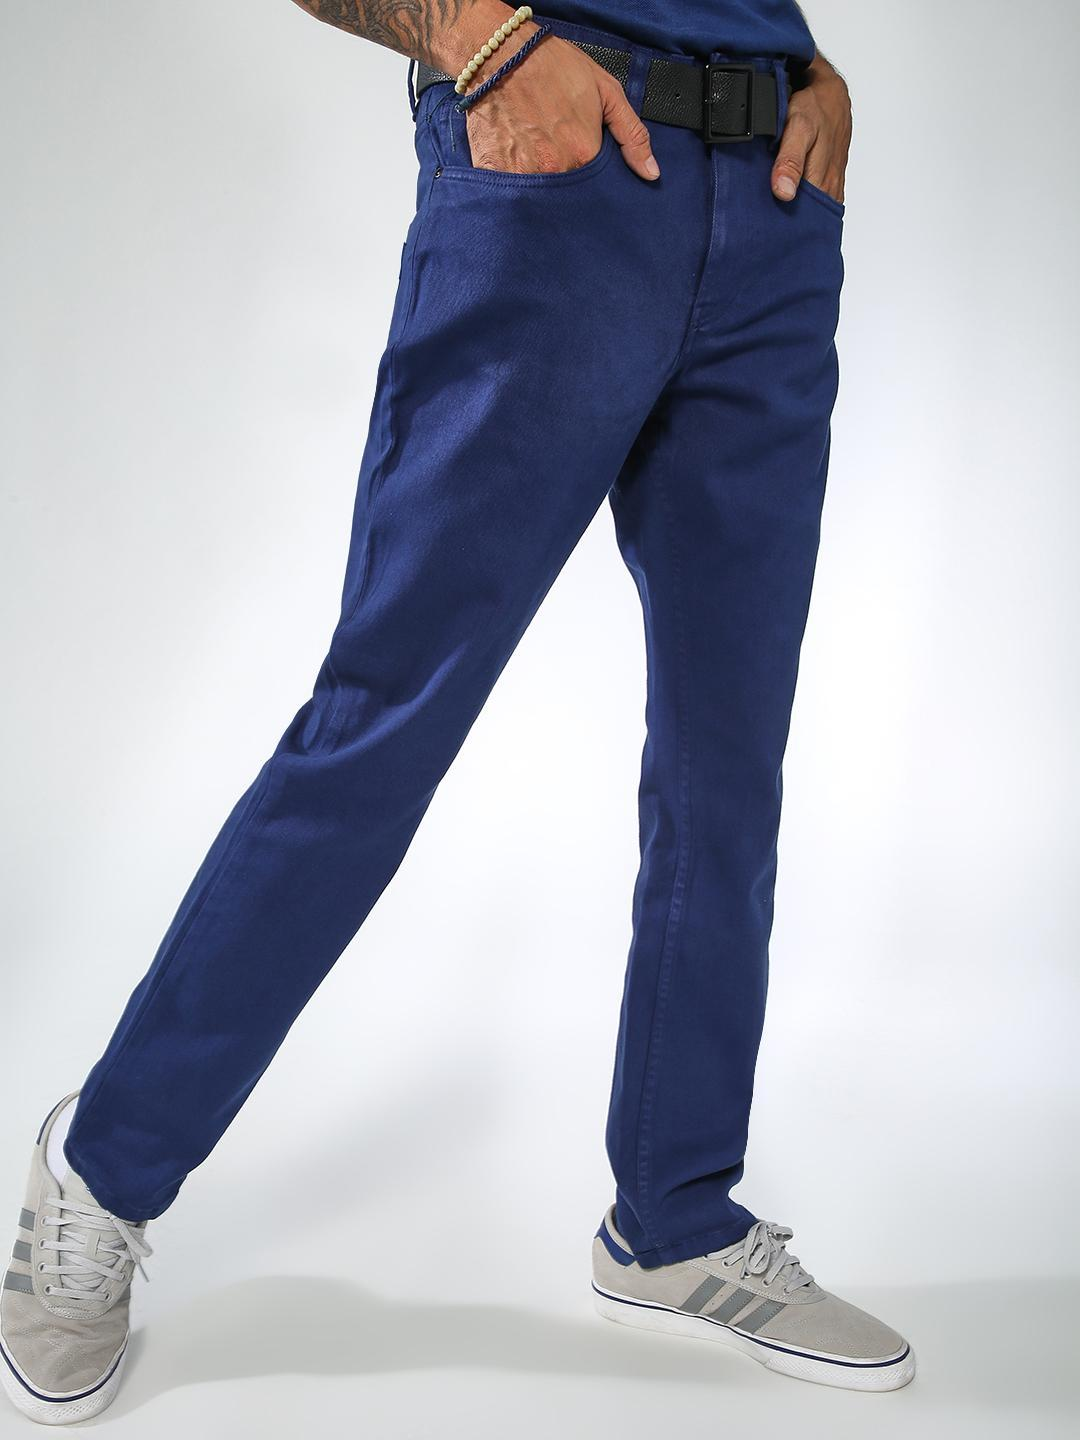 Blue Saint Navy Basic Slim-Fit Jeans 1